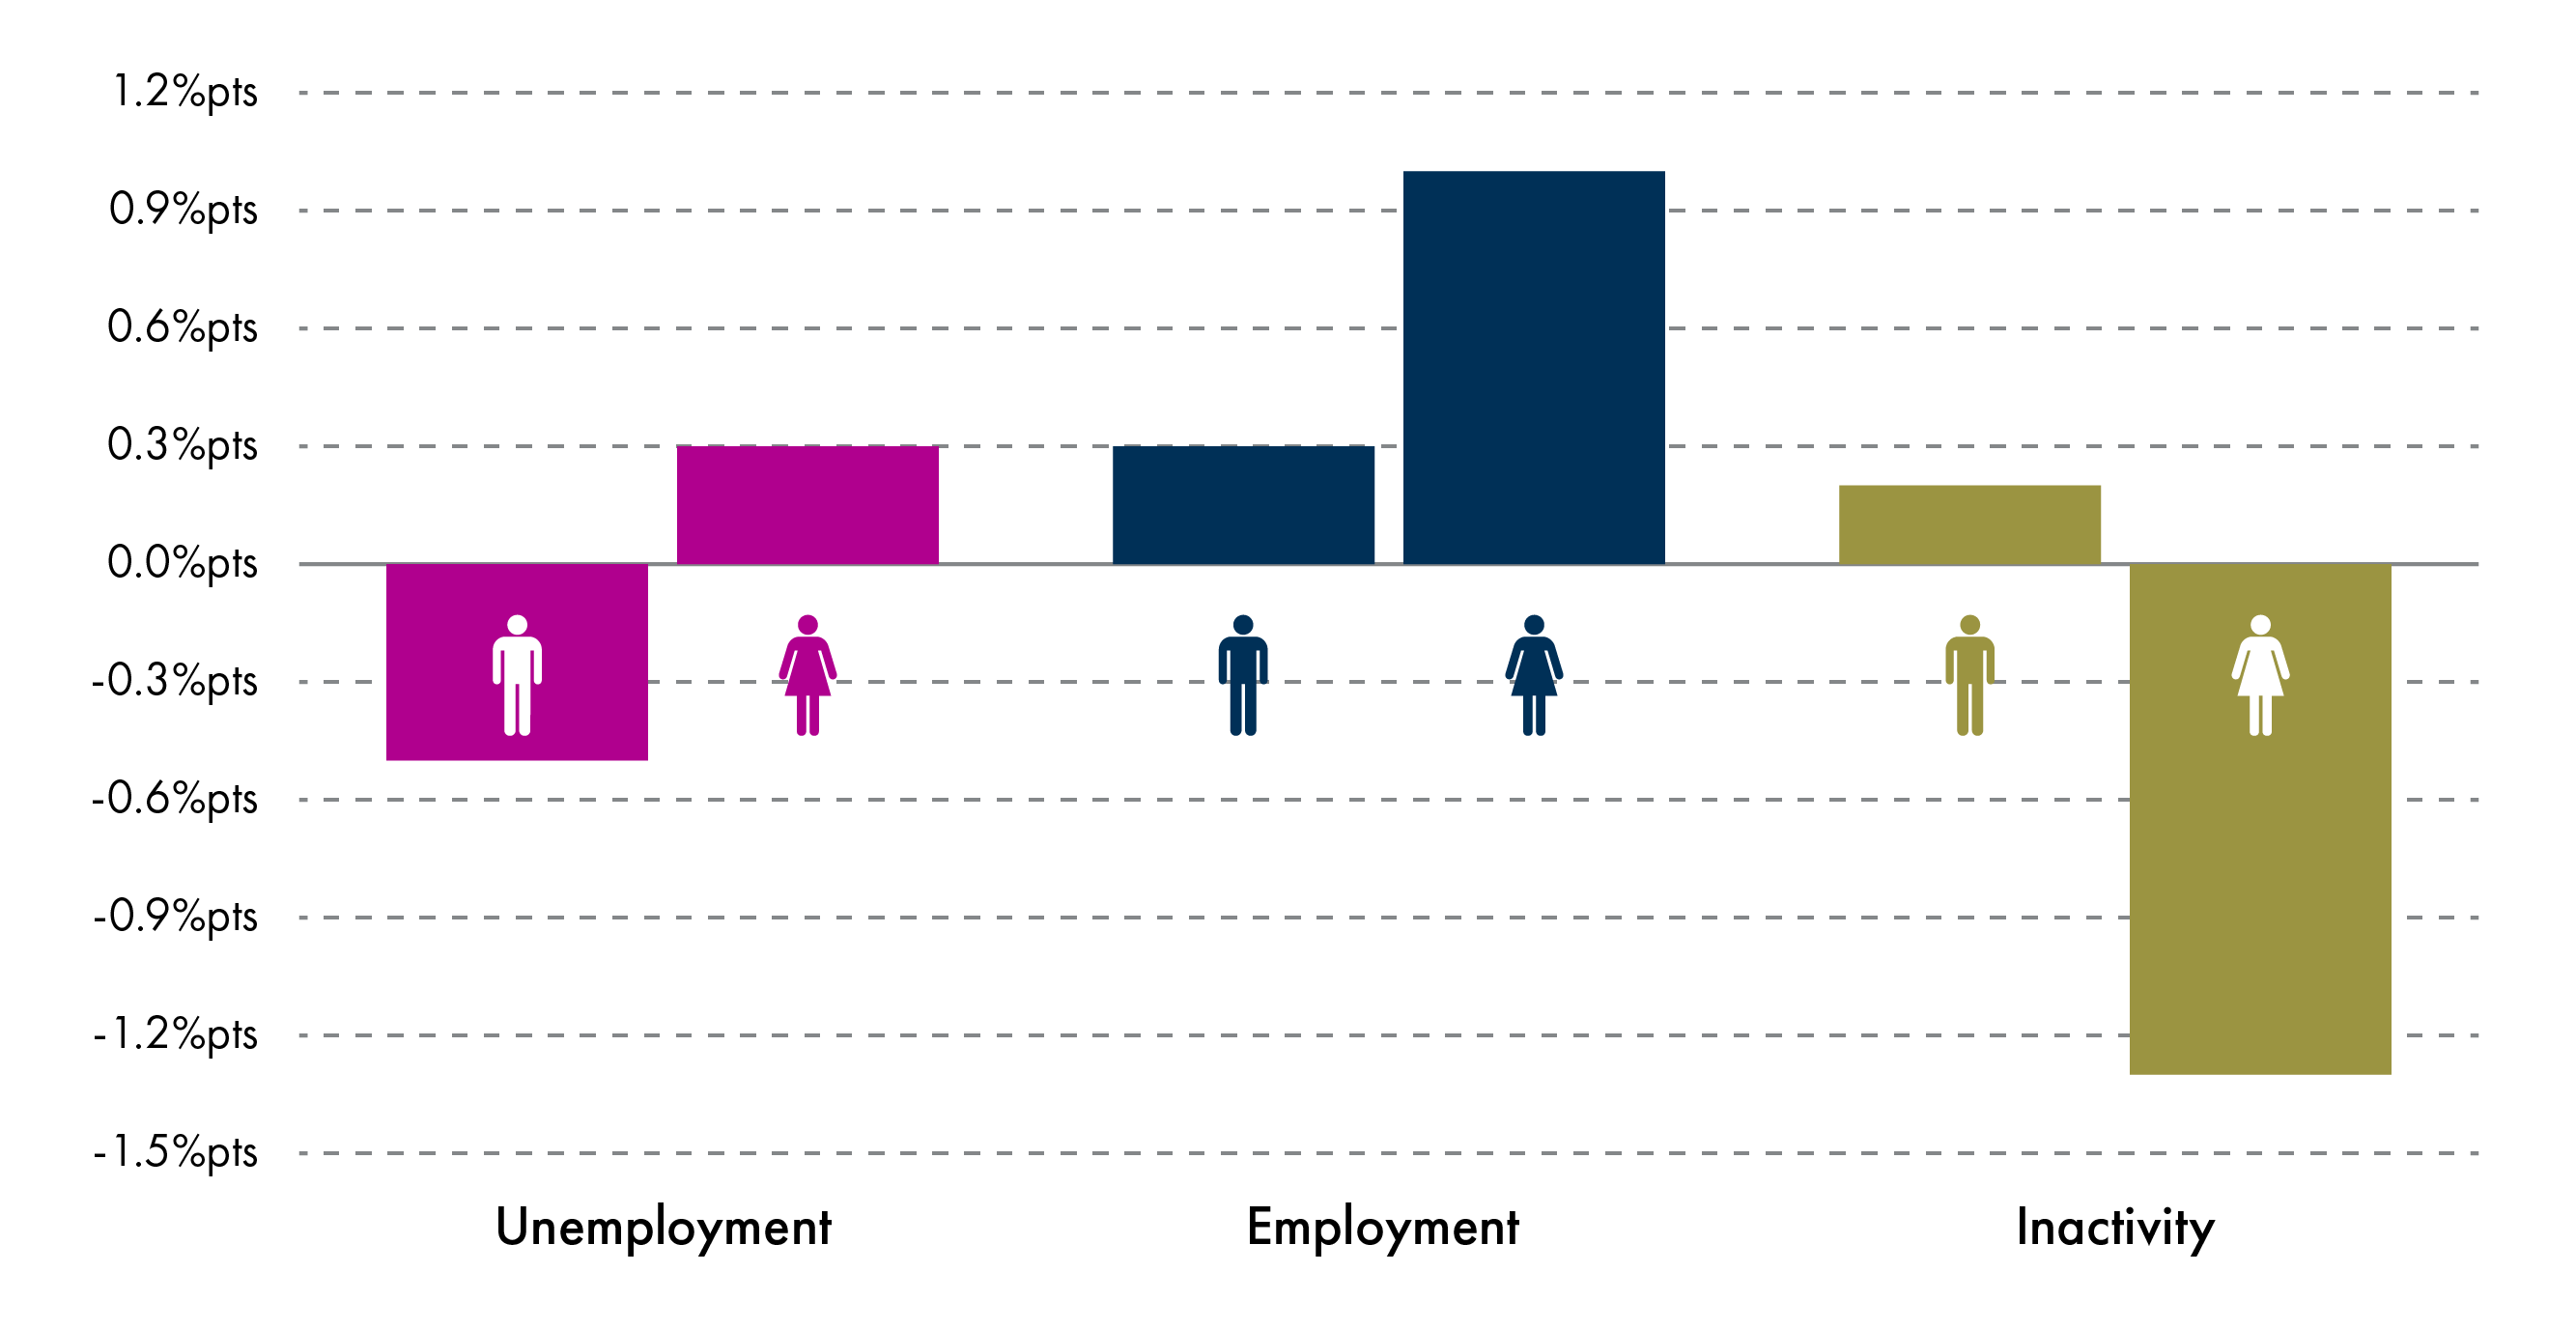 Change in unemployment, employment  and inactivity rates over the quarter by gender.